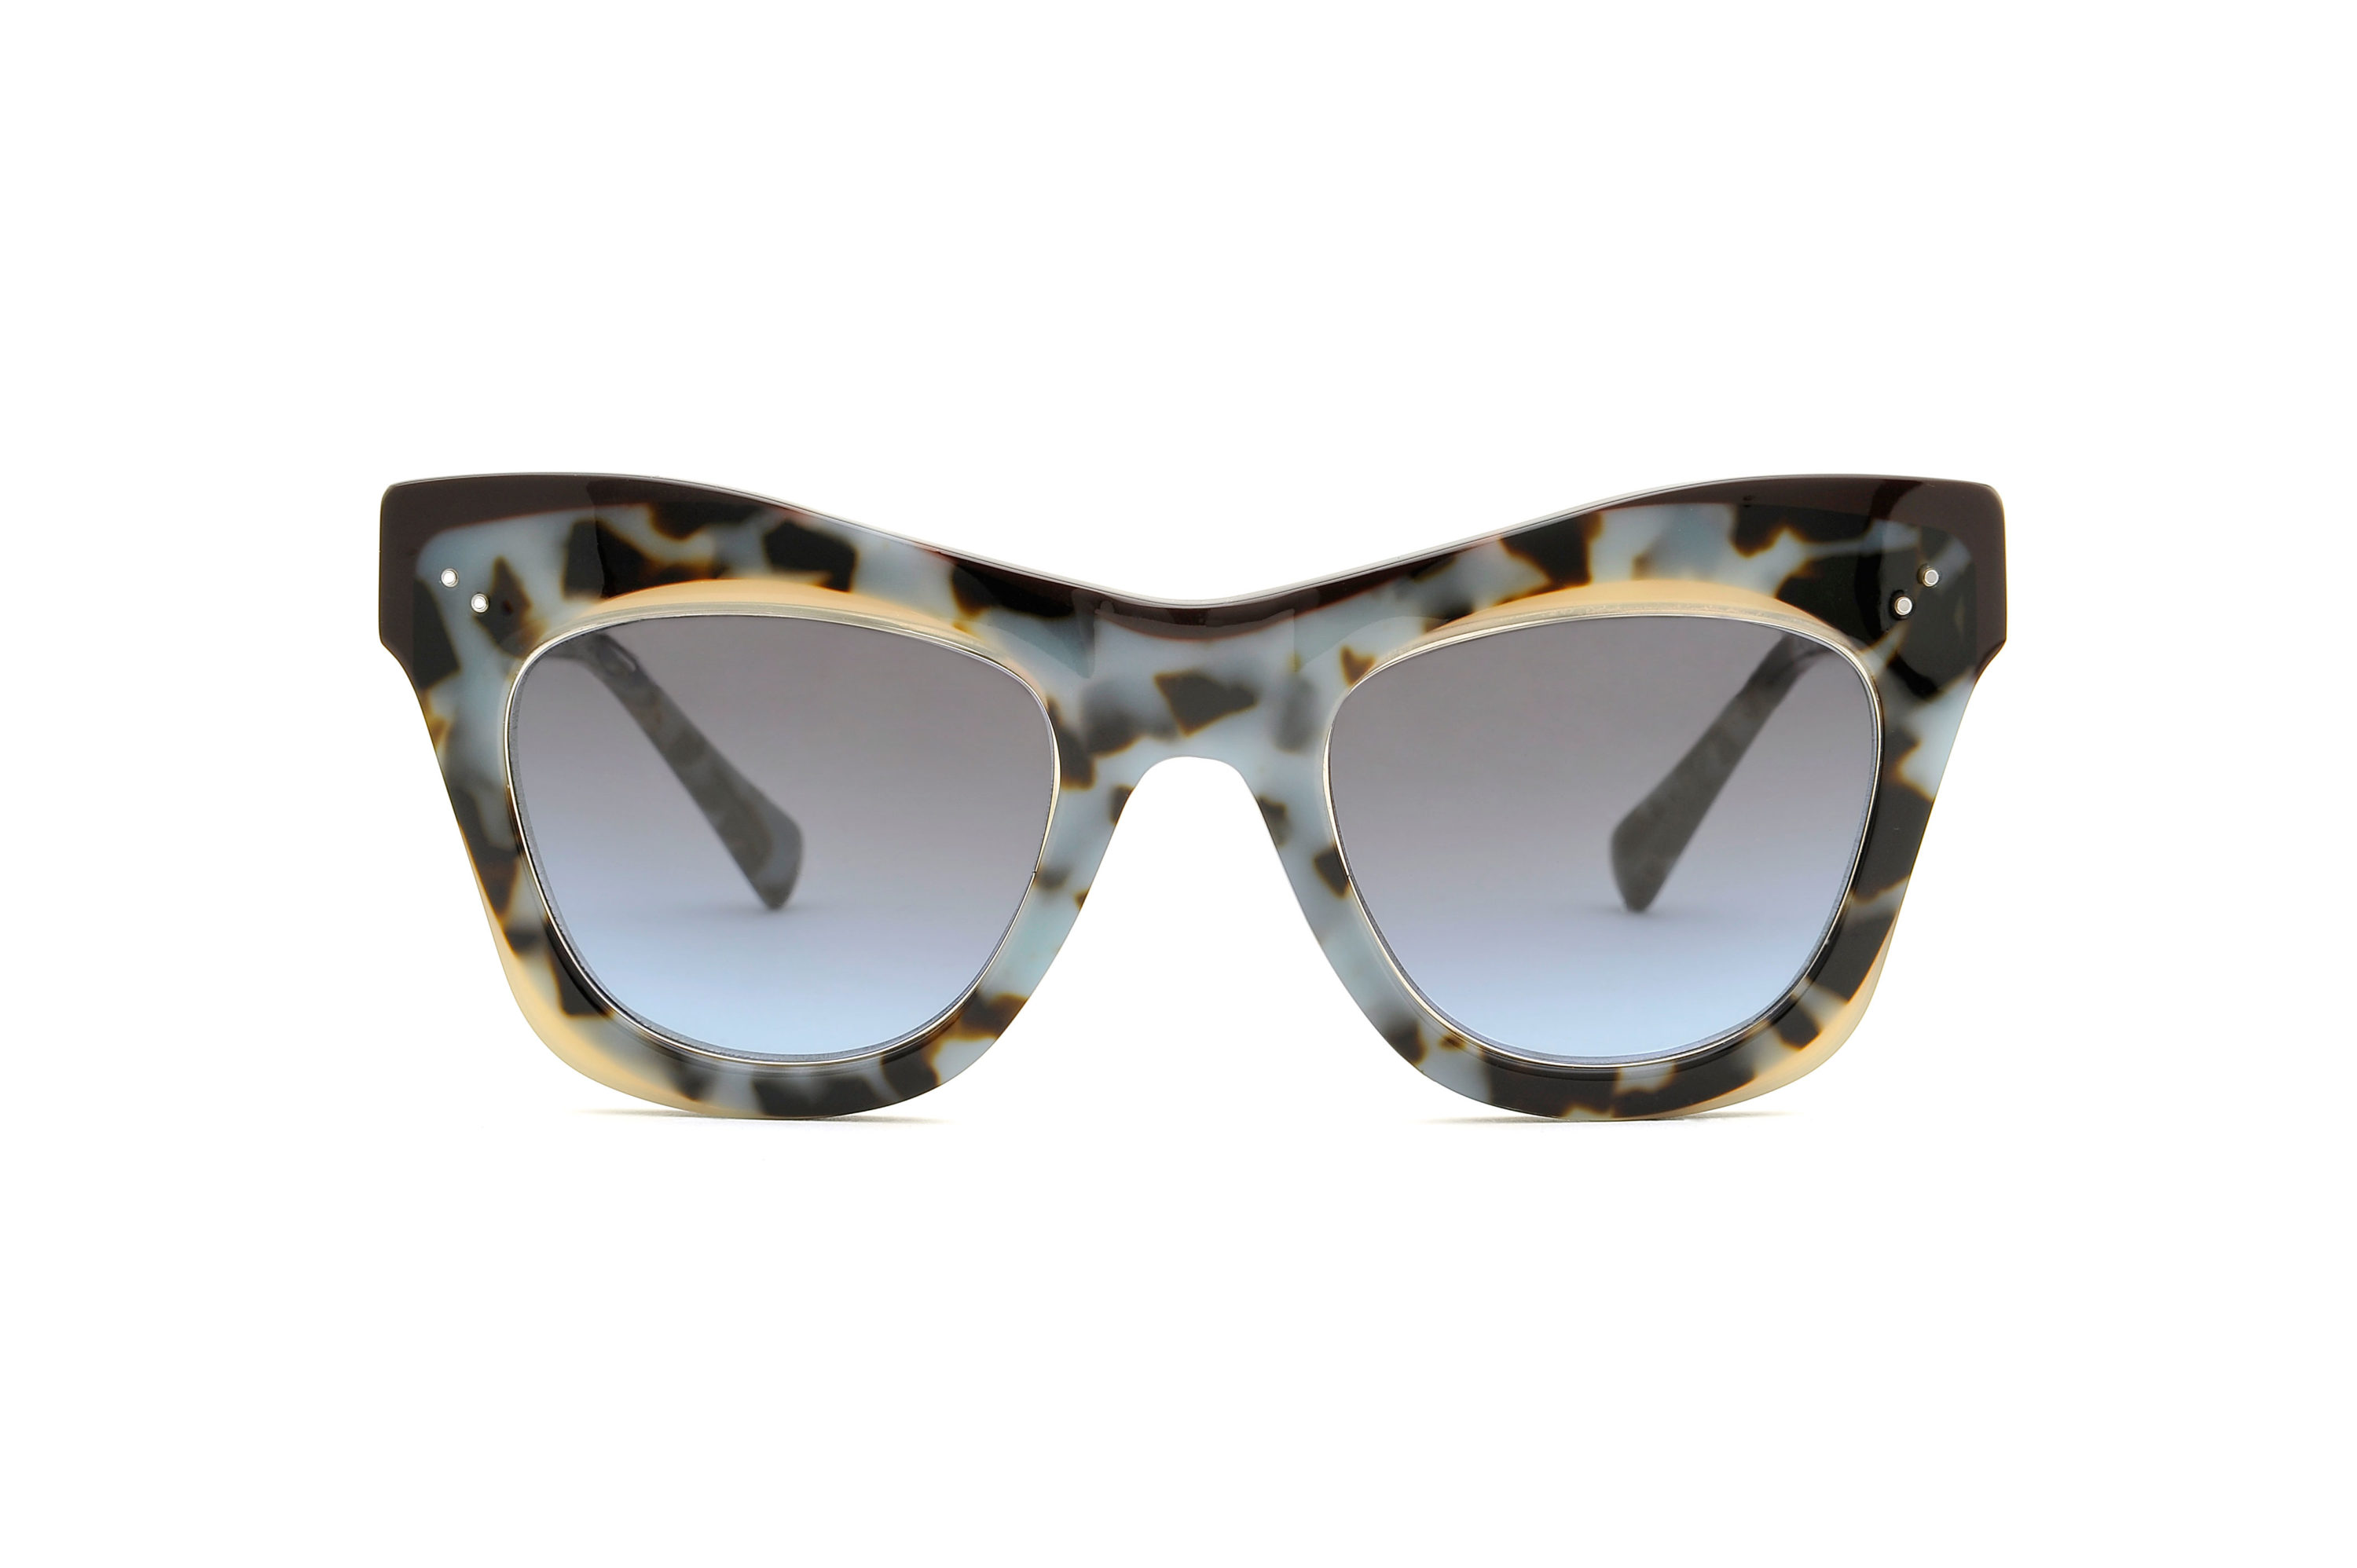 Onix acetate cat eye tortoise sunglasses by GIGI Studios